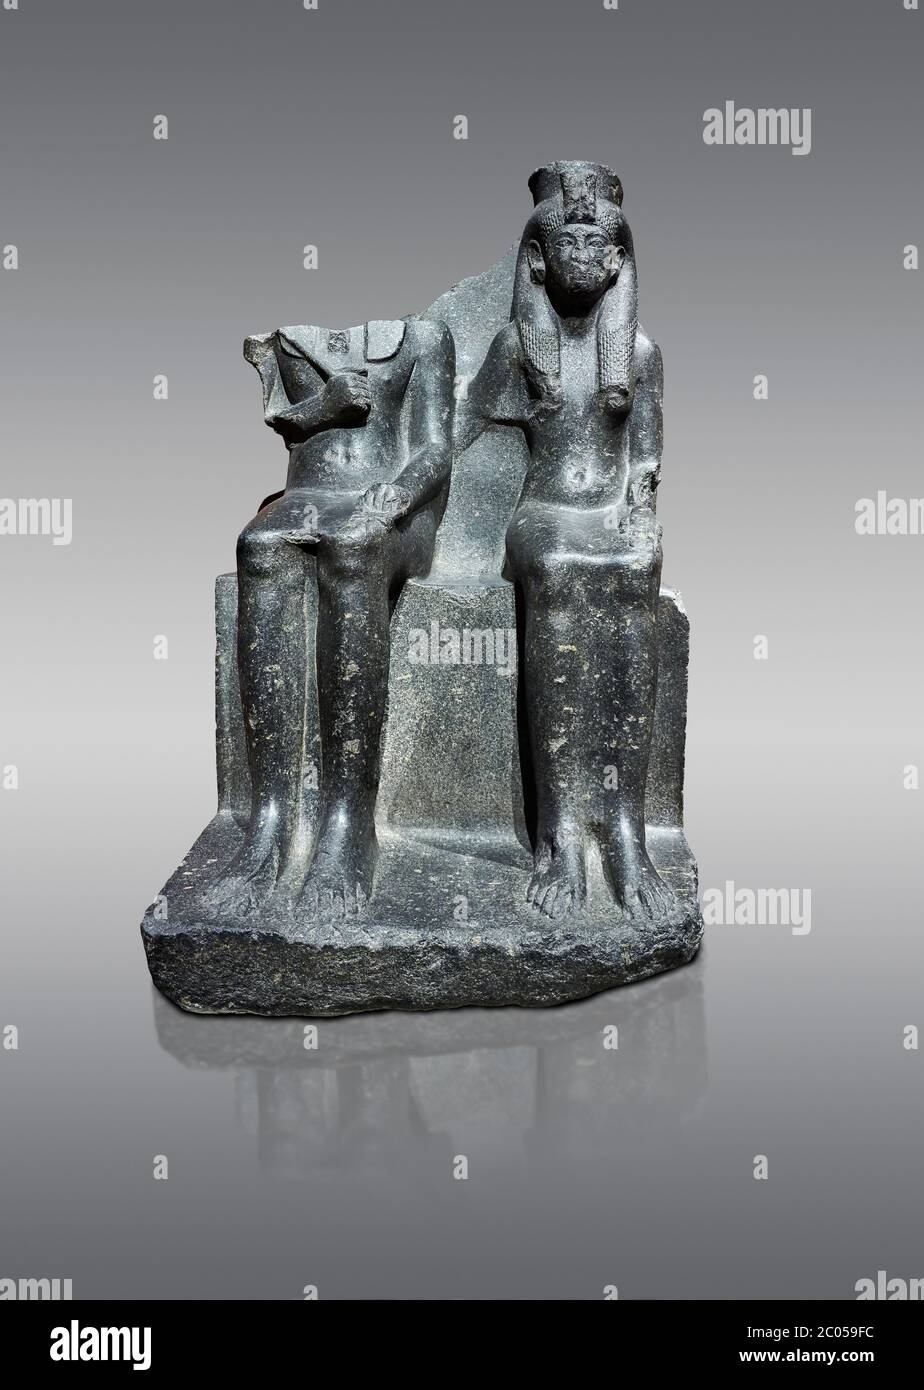 Ancient Egyptian statue of king Horemheb & his wife Mutnedjemet, granodiorite, New Kingdom, 18th Dynasty, (1319-1292 BC), Karnak, Temple of Amon. Egyp Stock Photo